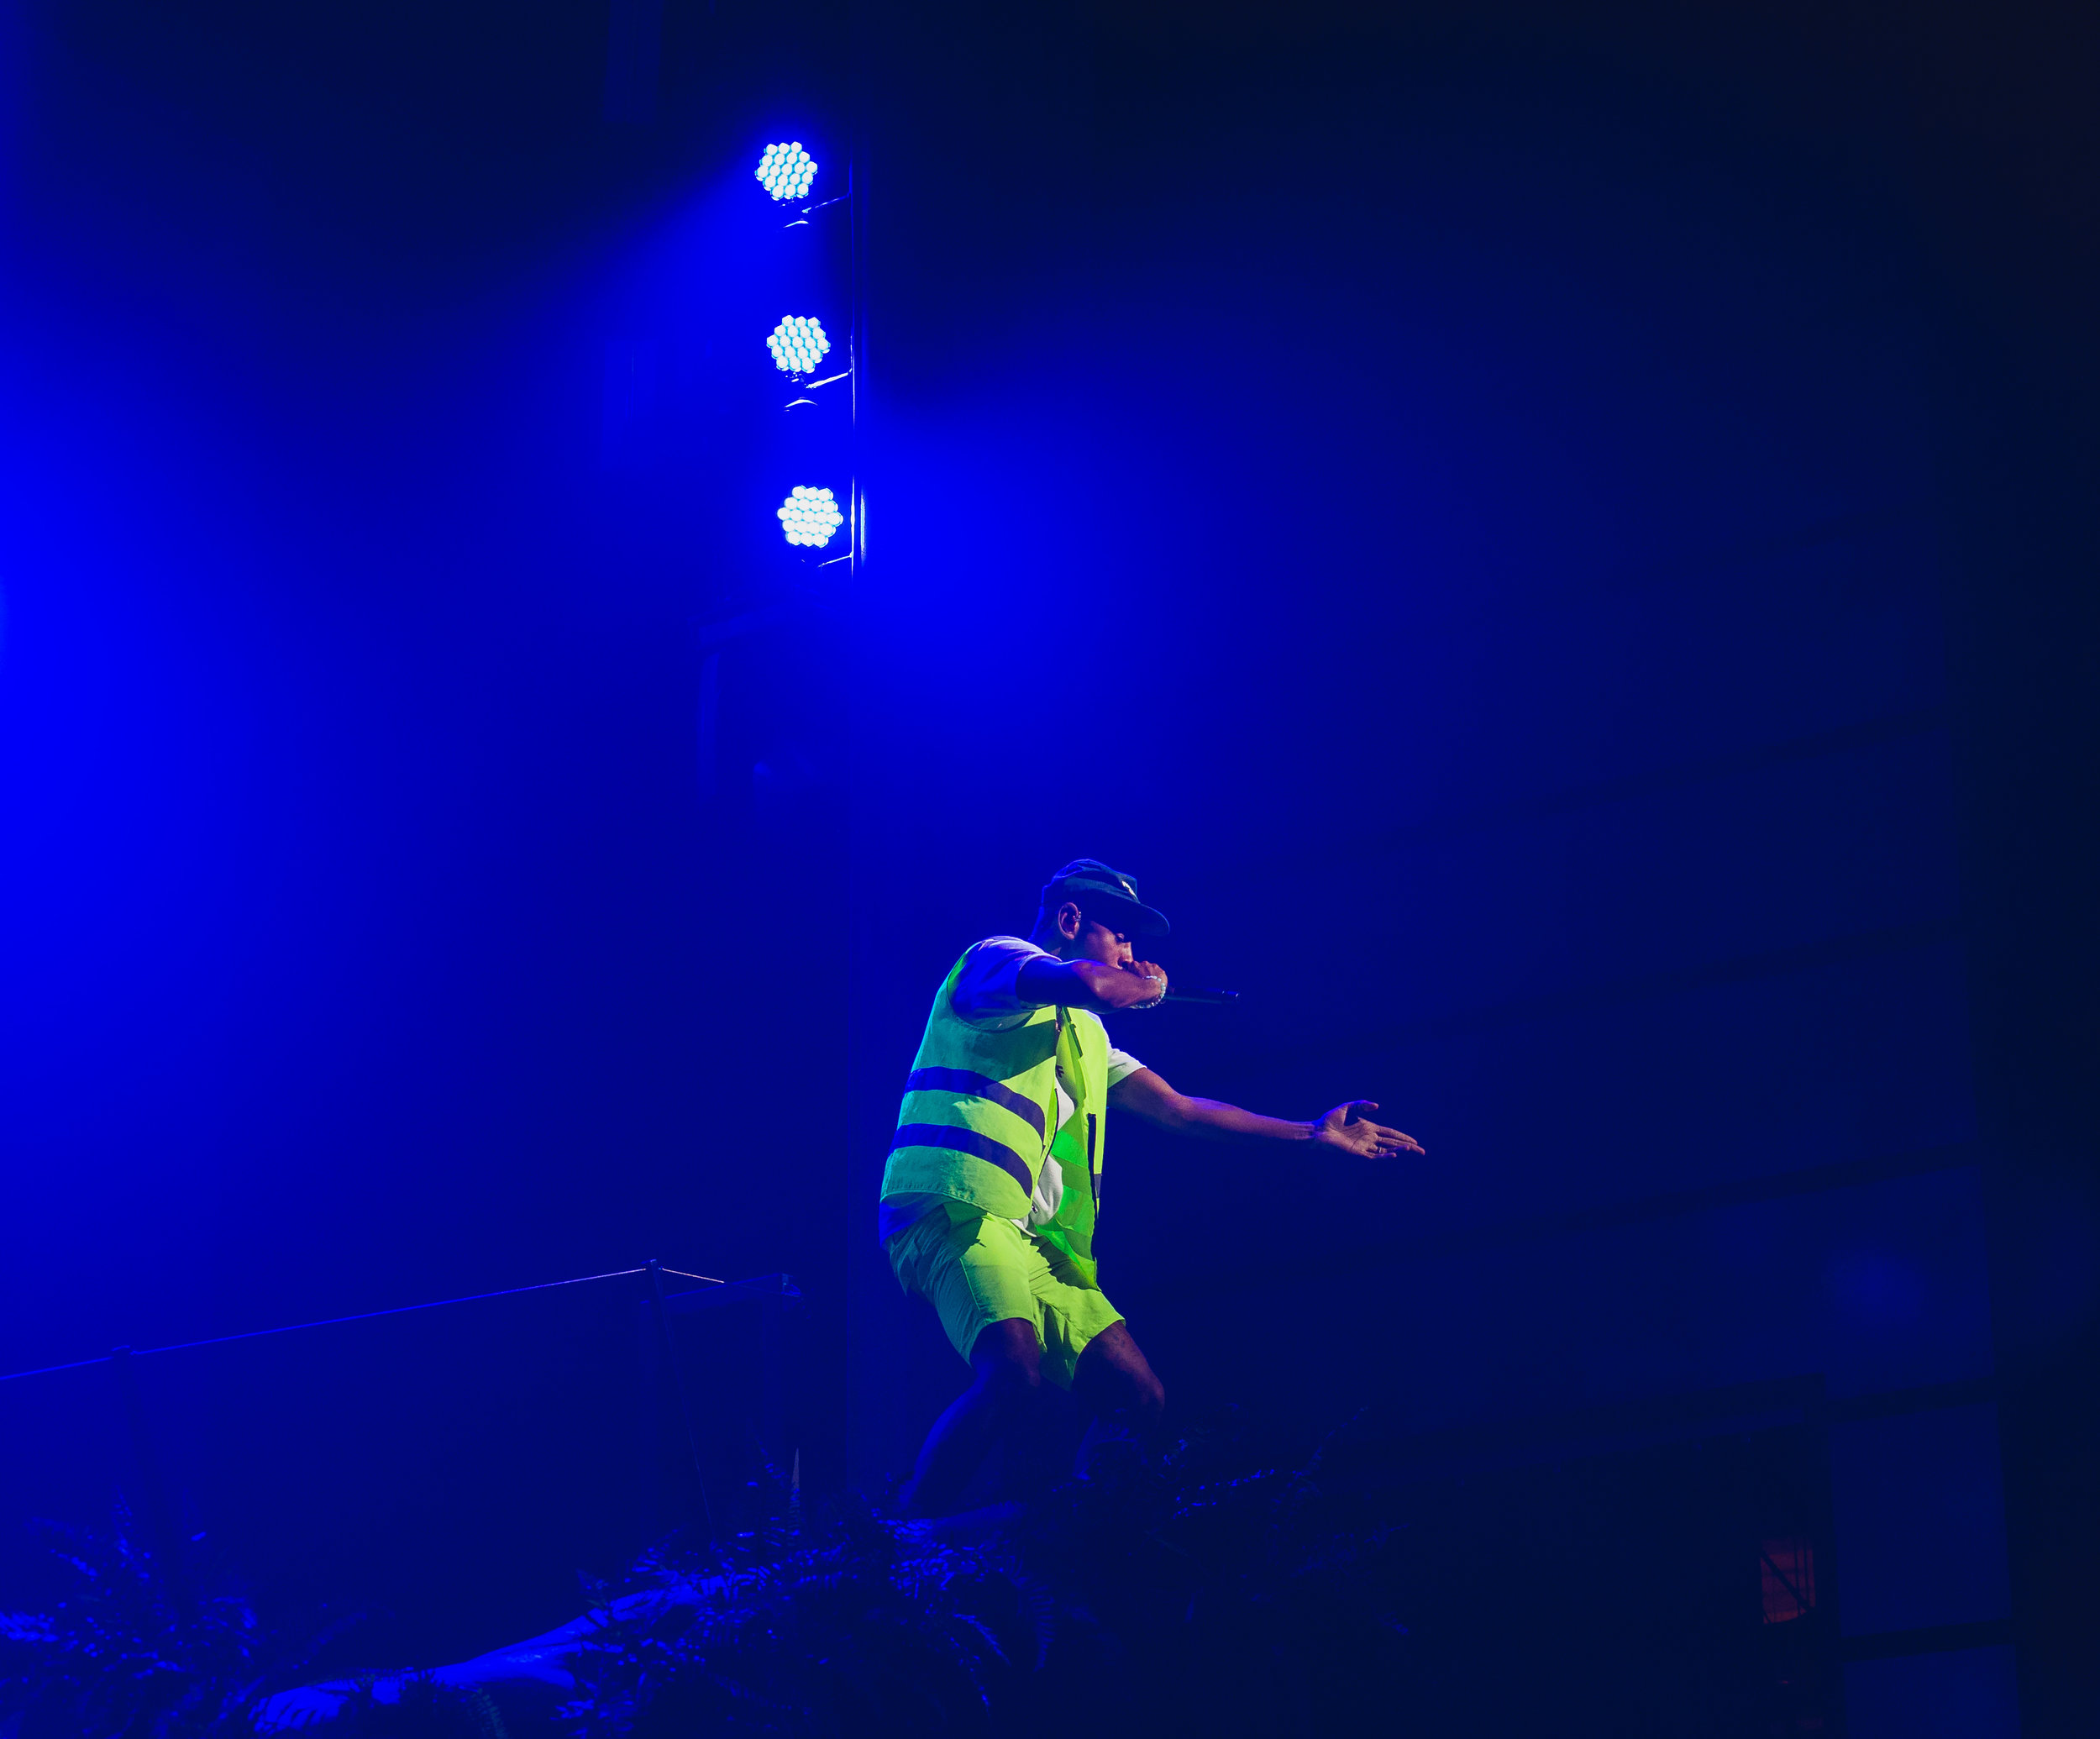 Tyler, the Creator @ The Anthem (Photo by Avery Junius / @1takeace)